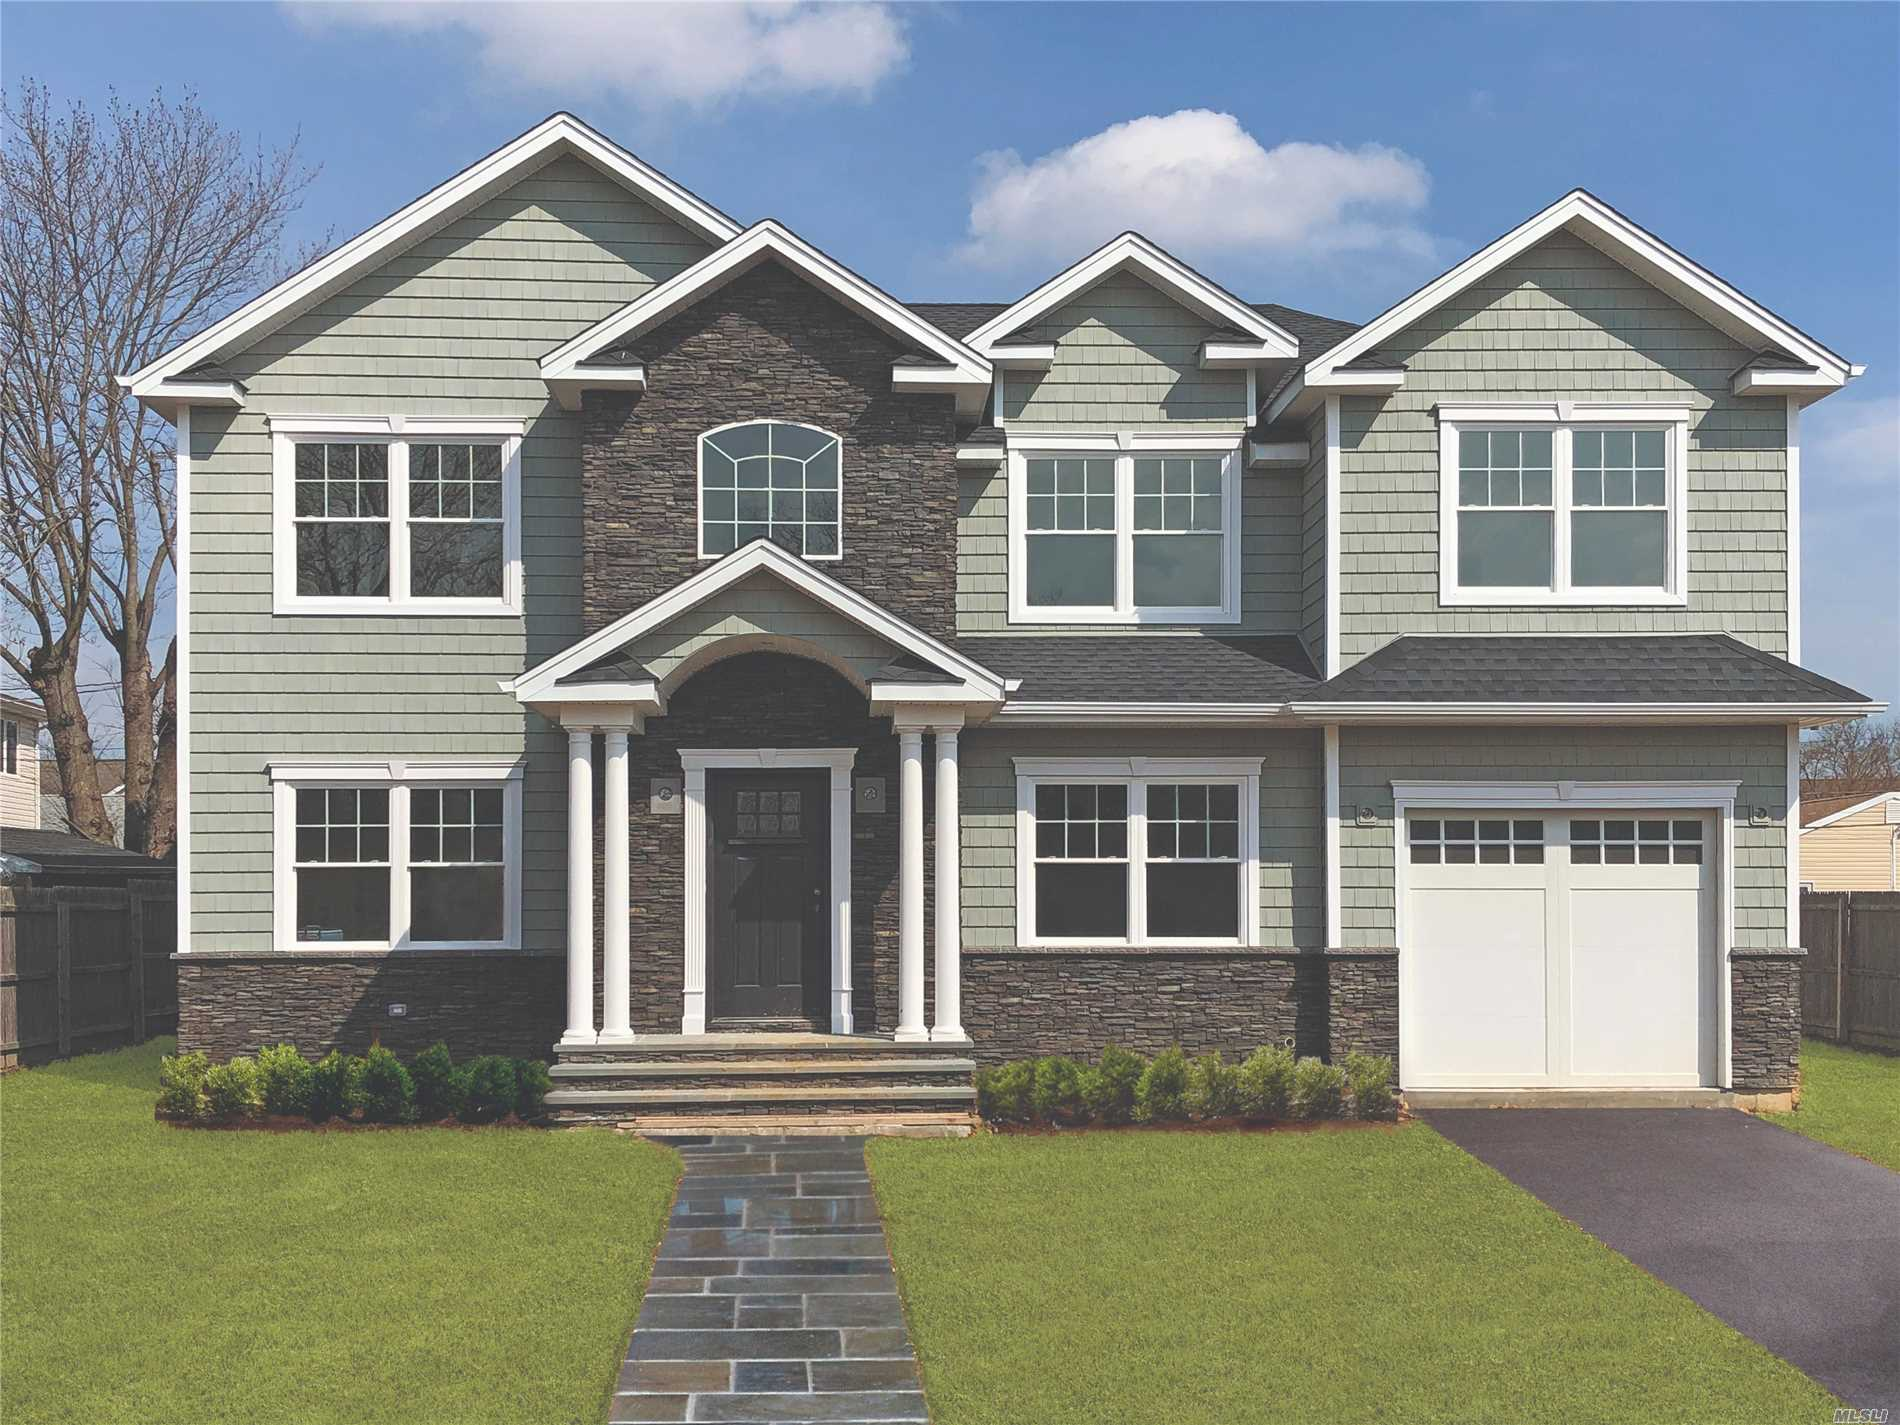 Stunning New Construction Home In Syosset Groves!Mid-Blk Center Hall Colonial W/5 Bdrms & 3 Fbths! Open Flow Flr Plan W/Dbl Hgt Foyer Leading To Lvrm, Fam Rm W/Fpl, Fdrm & Gourmet Eik W/Gas & Granite Island, Bdrm & Fbth.Magnificent Master Ste W/Lux Fbth & Lg Closet plus 3 Bdrms &Fbth. Exquisite Finishes & Superior Craftsmanship!South Groves Elem, Hbt Middle.Time To Customize!Pictures are Examples from other homes.